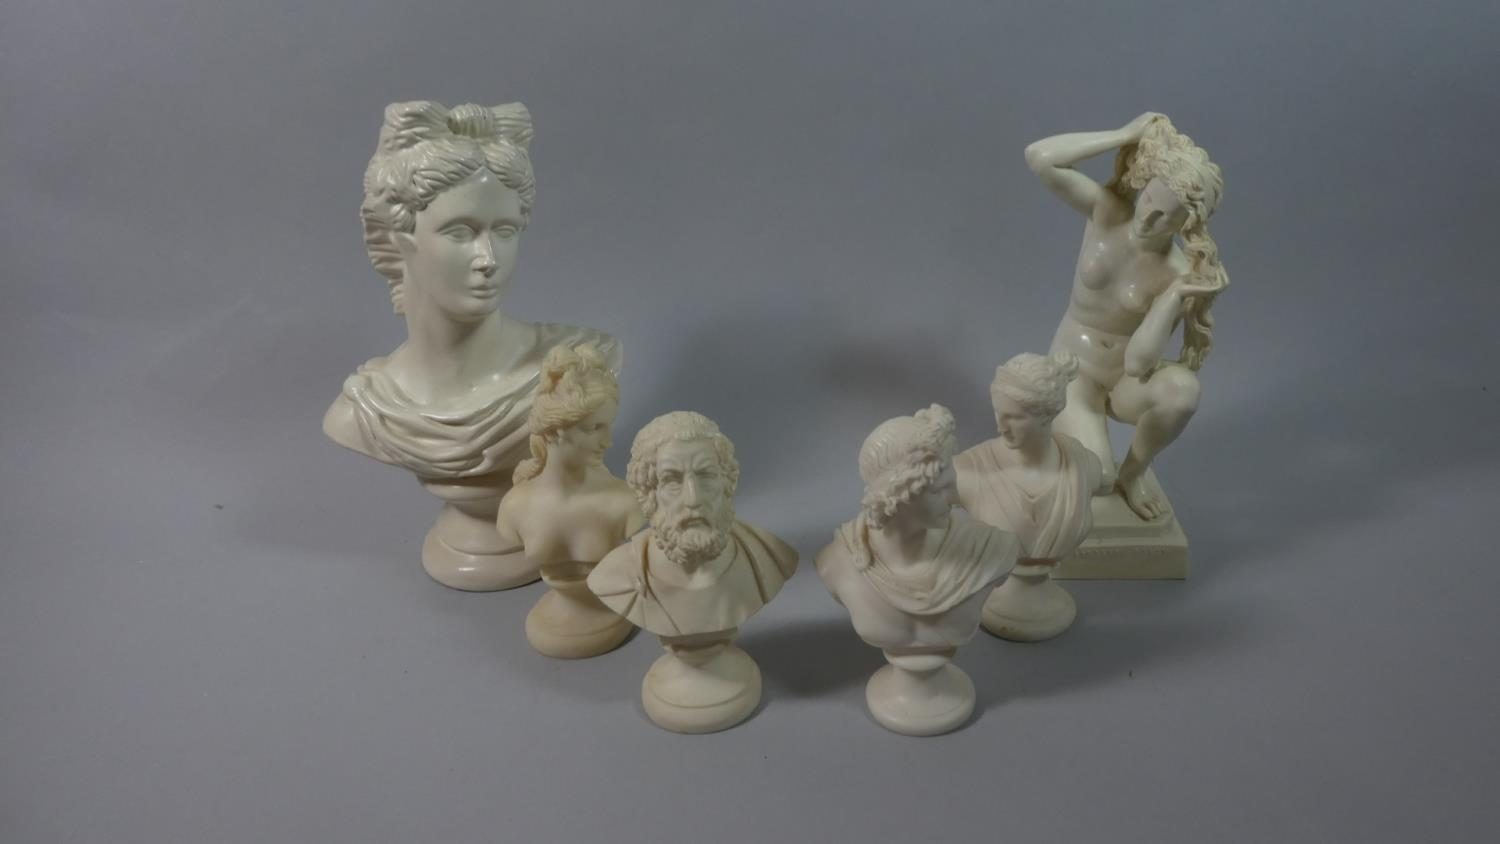 Lot 154 - A Collection of Resin and Ceramic Classical Busts, The Tallest 27cm high